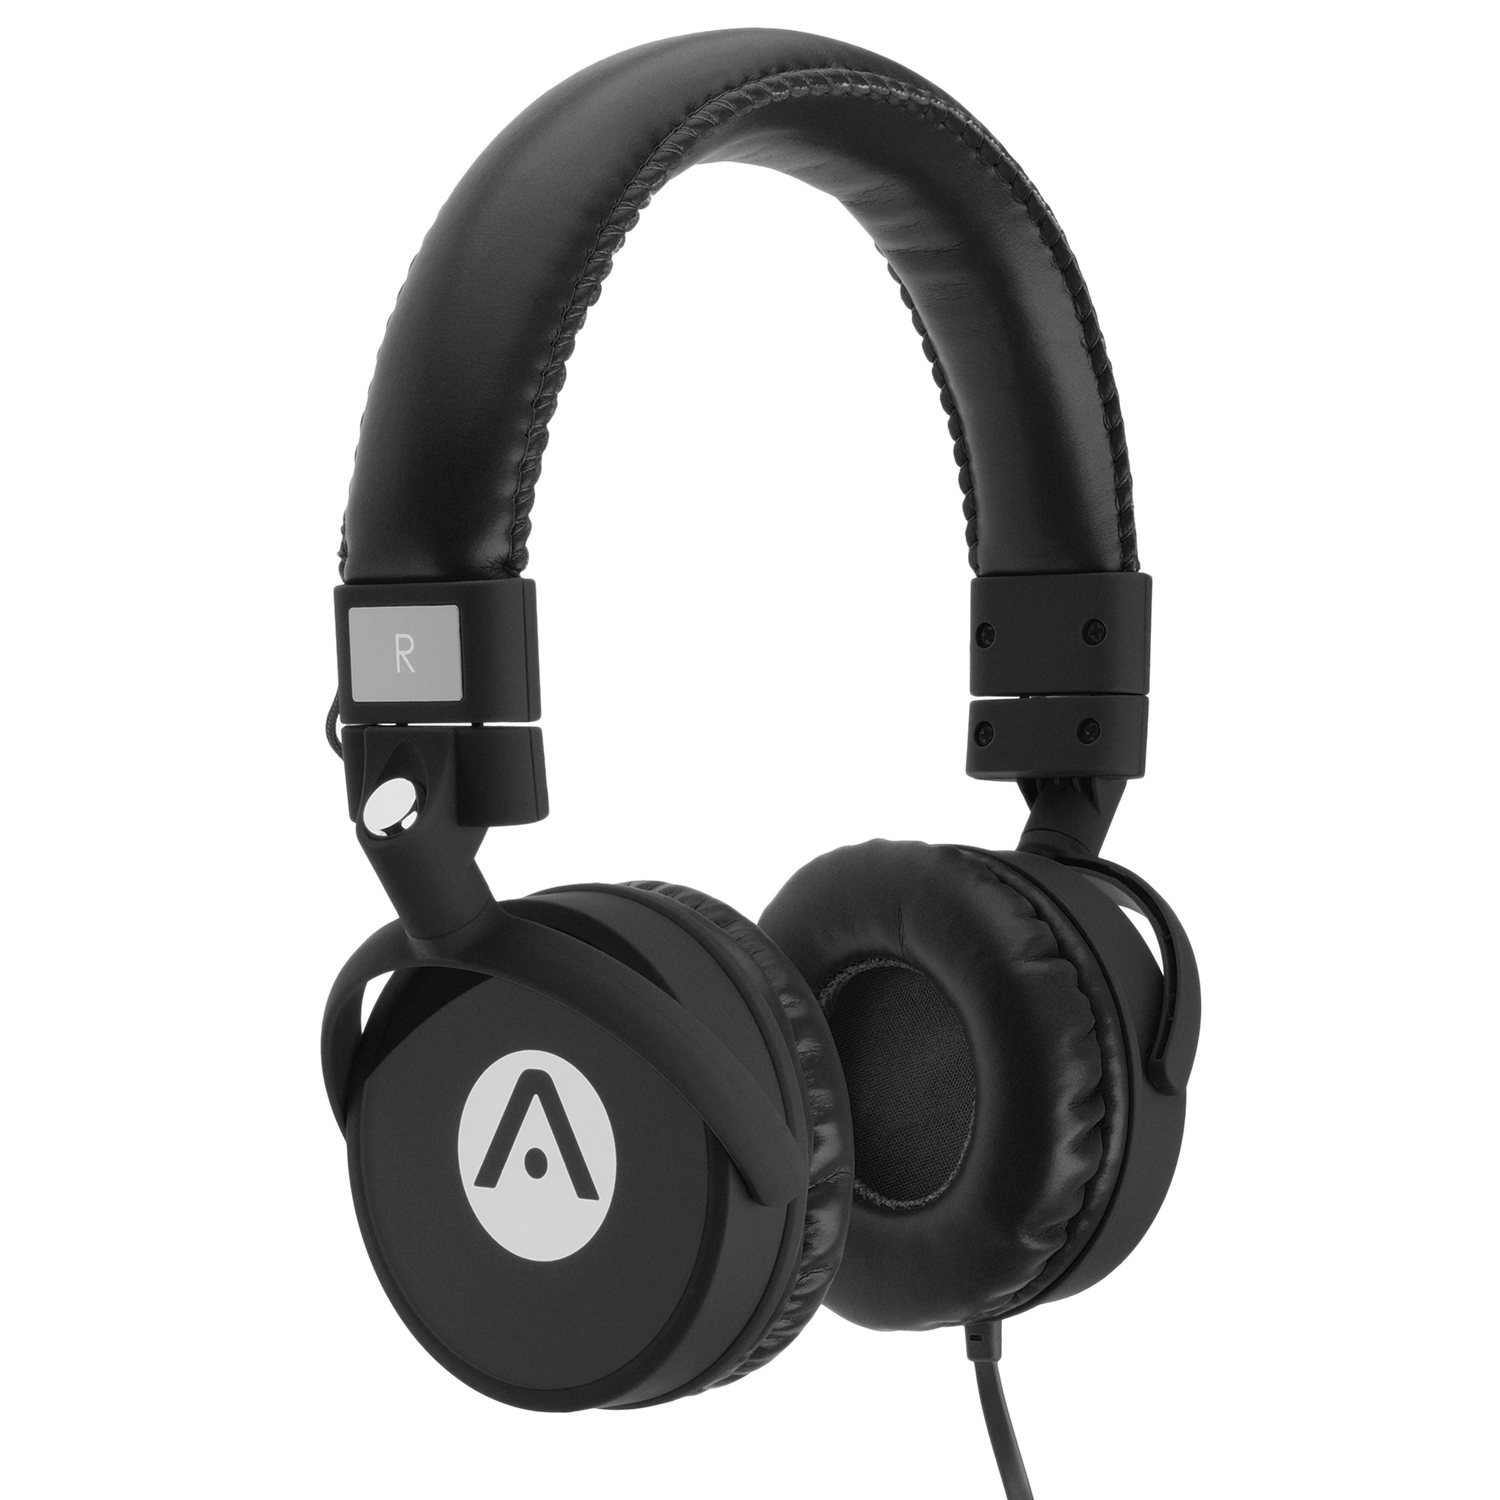 Image for Audiomate A7 Stereo Bass Headphones With Microphone - Black from Circuit City